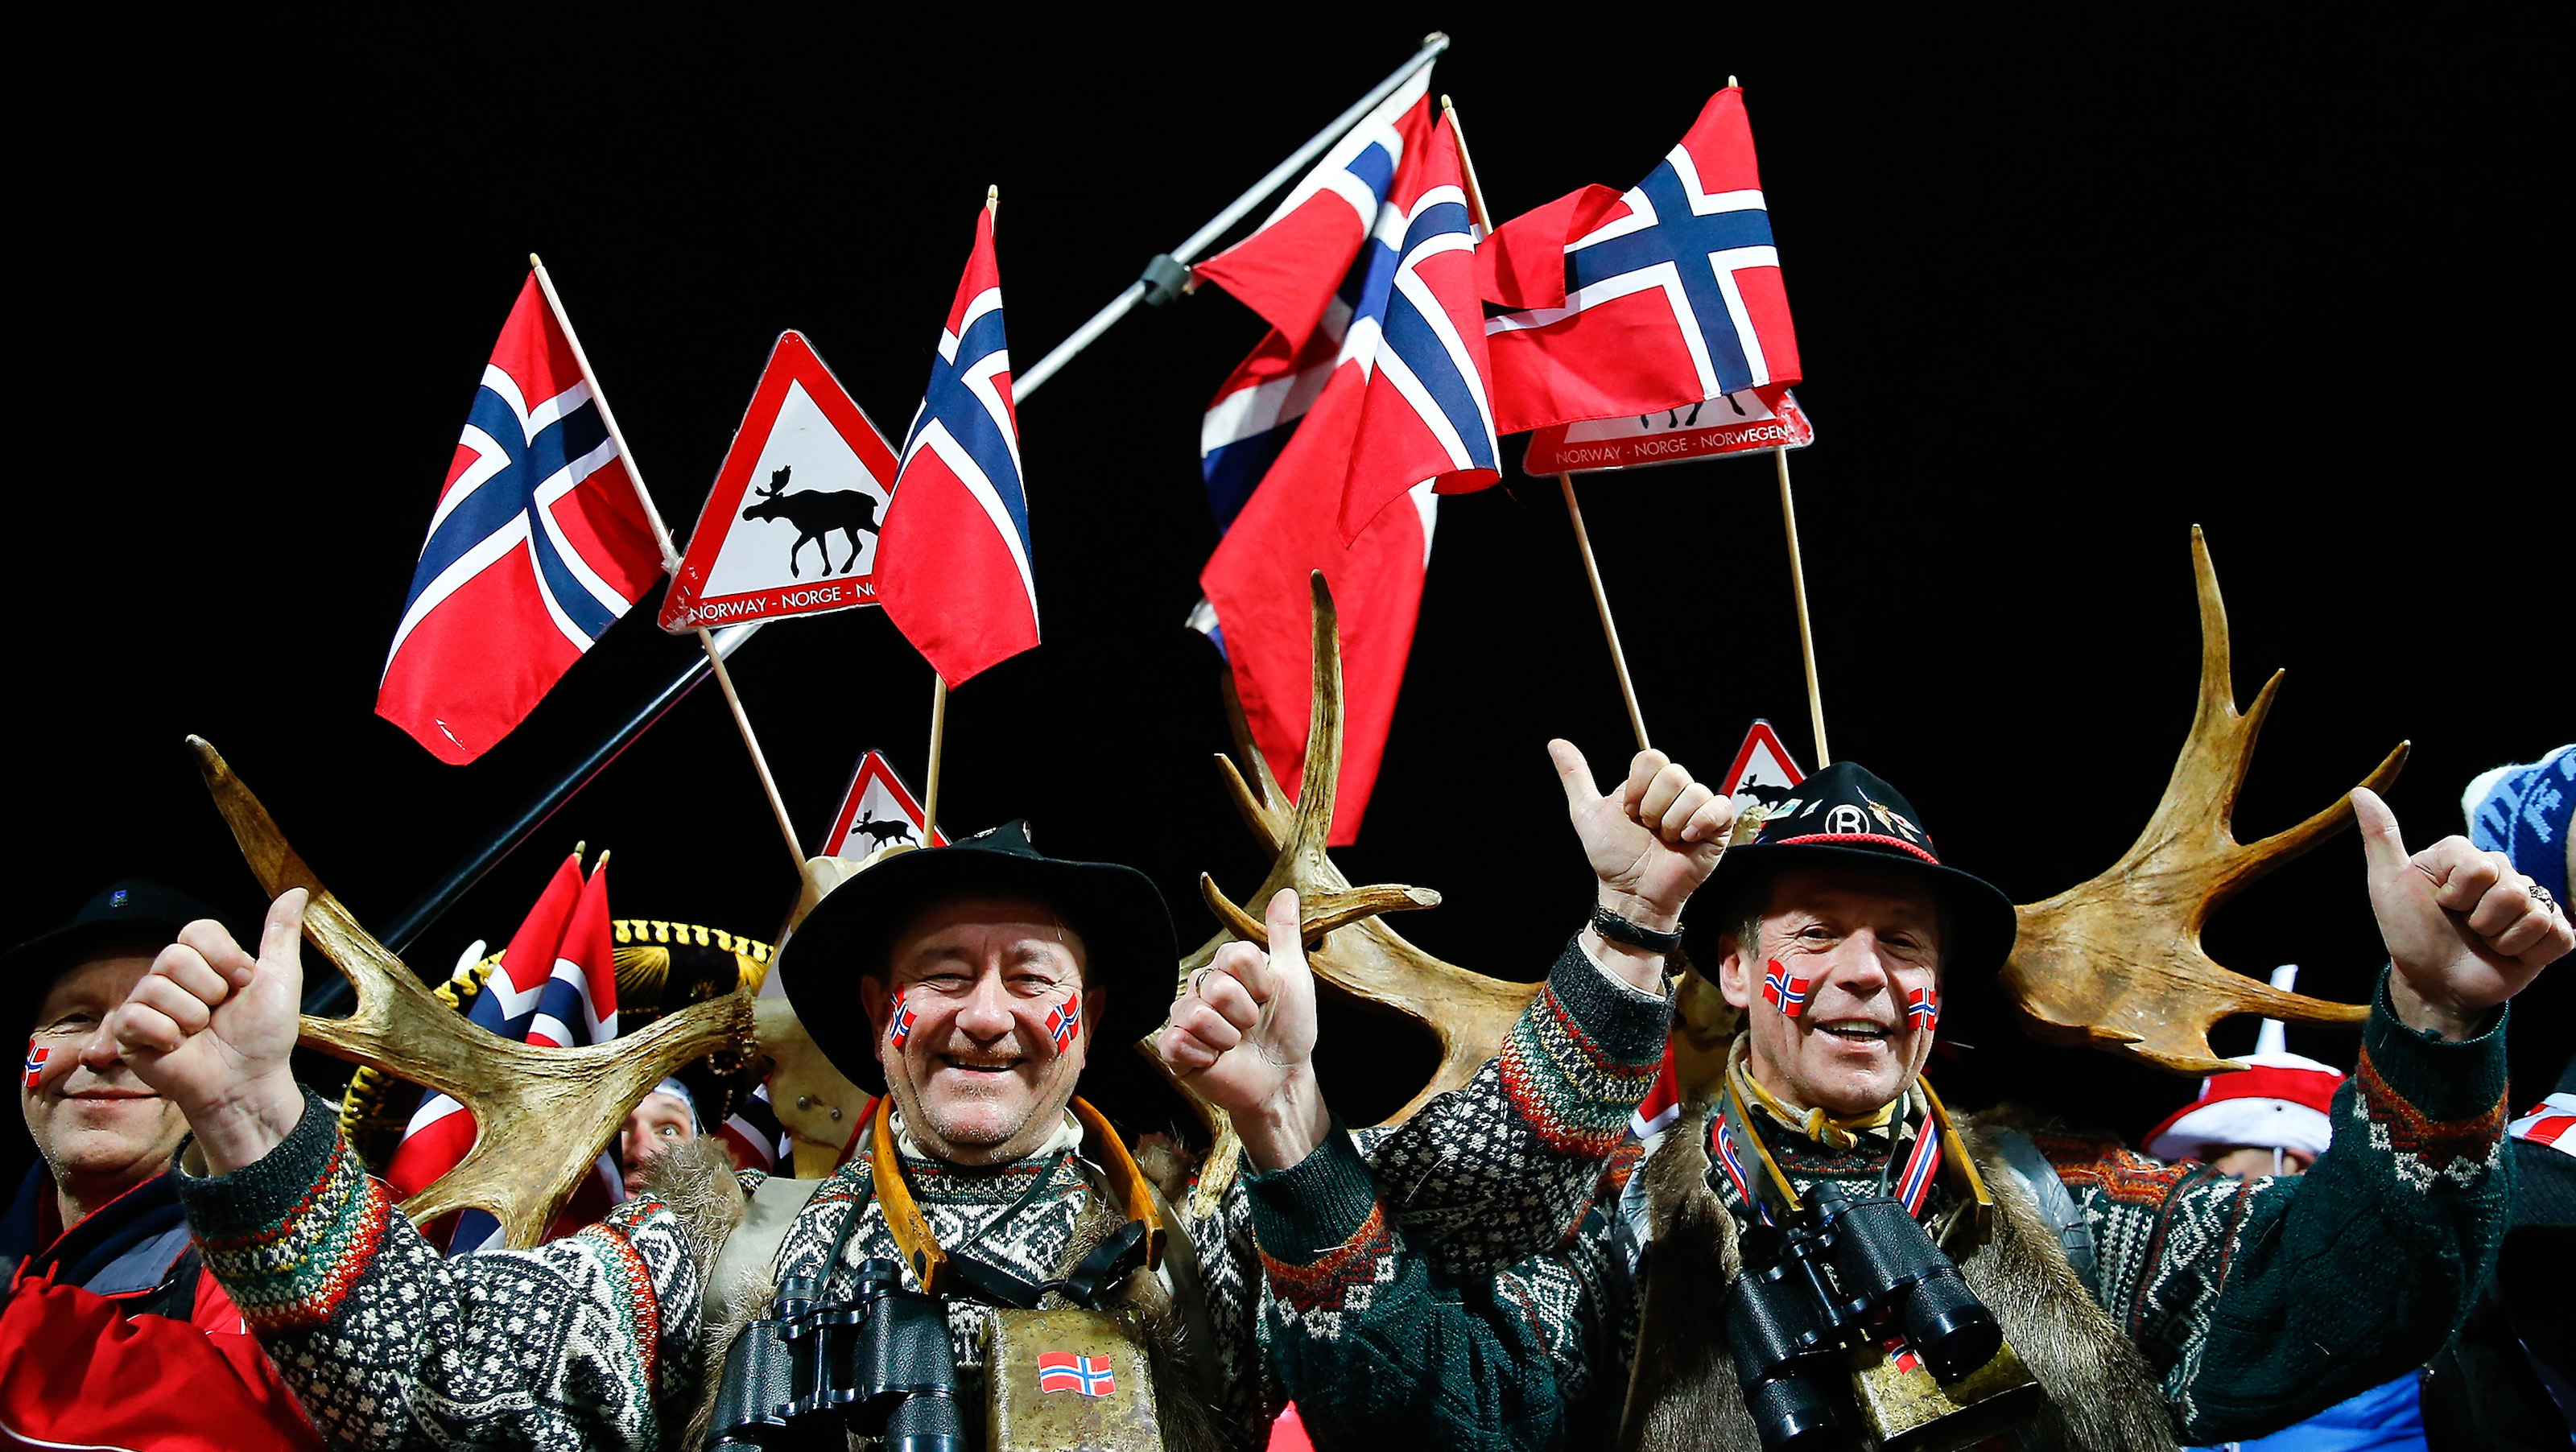 Once again, Norway has been voted the best country in the world for humans